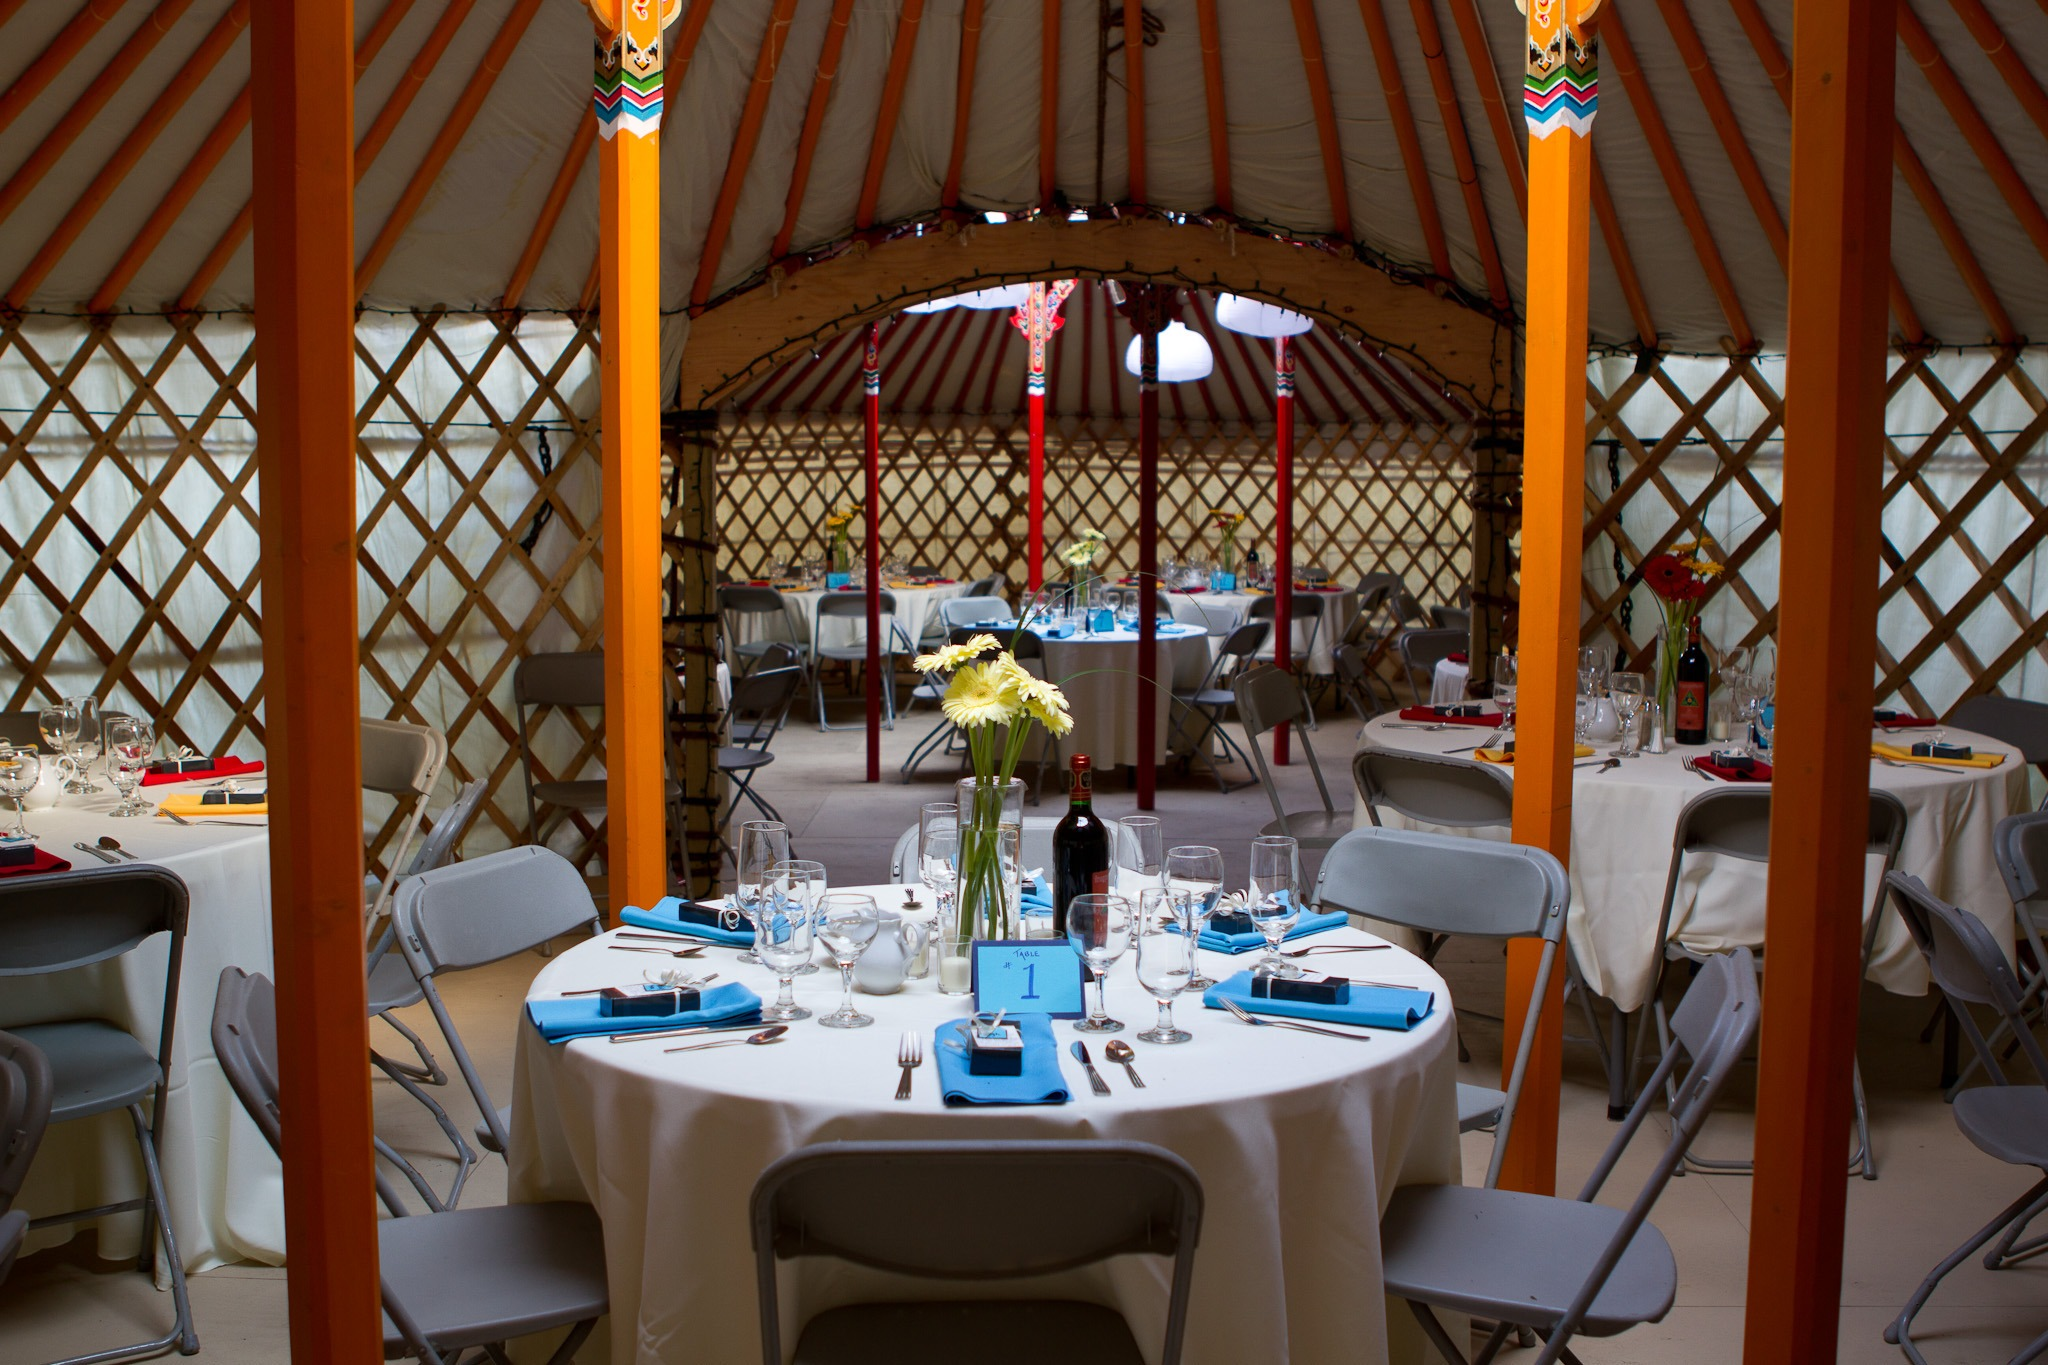 dinner party event in a Mongolian Yurt